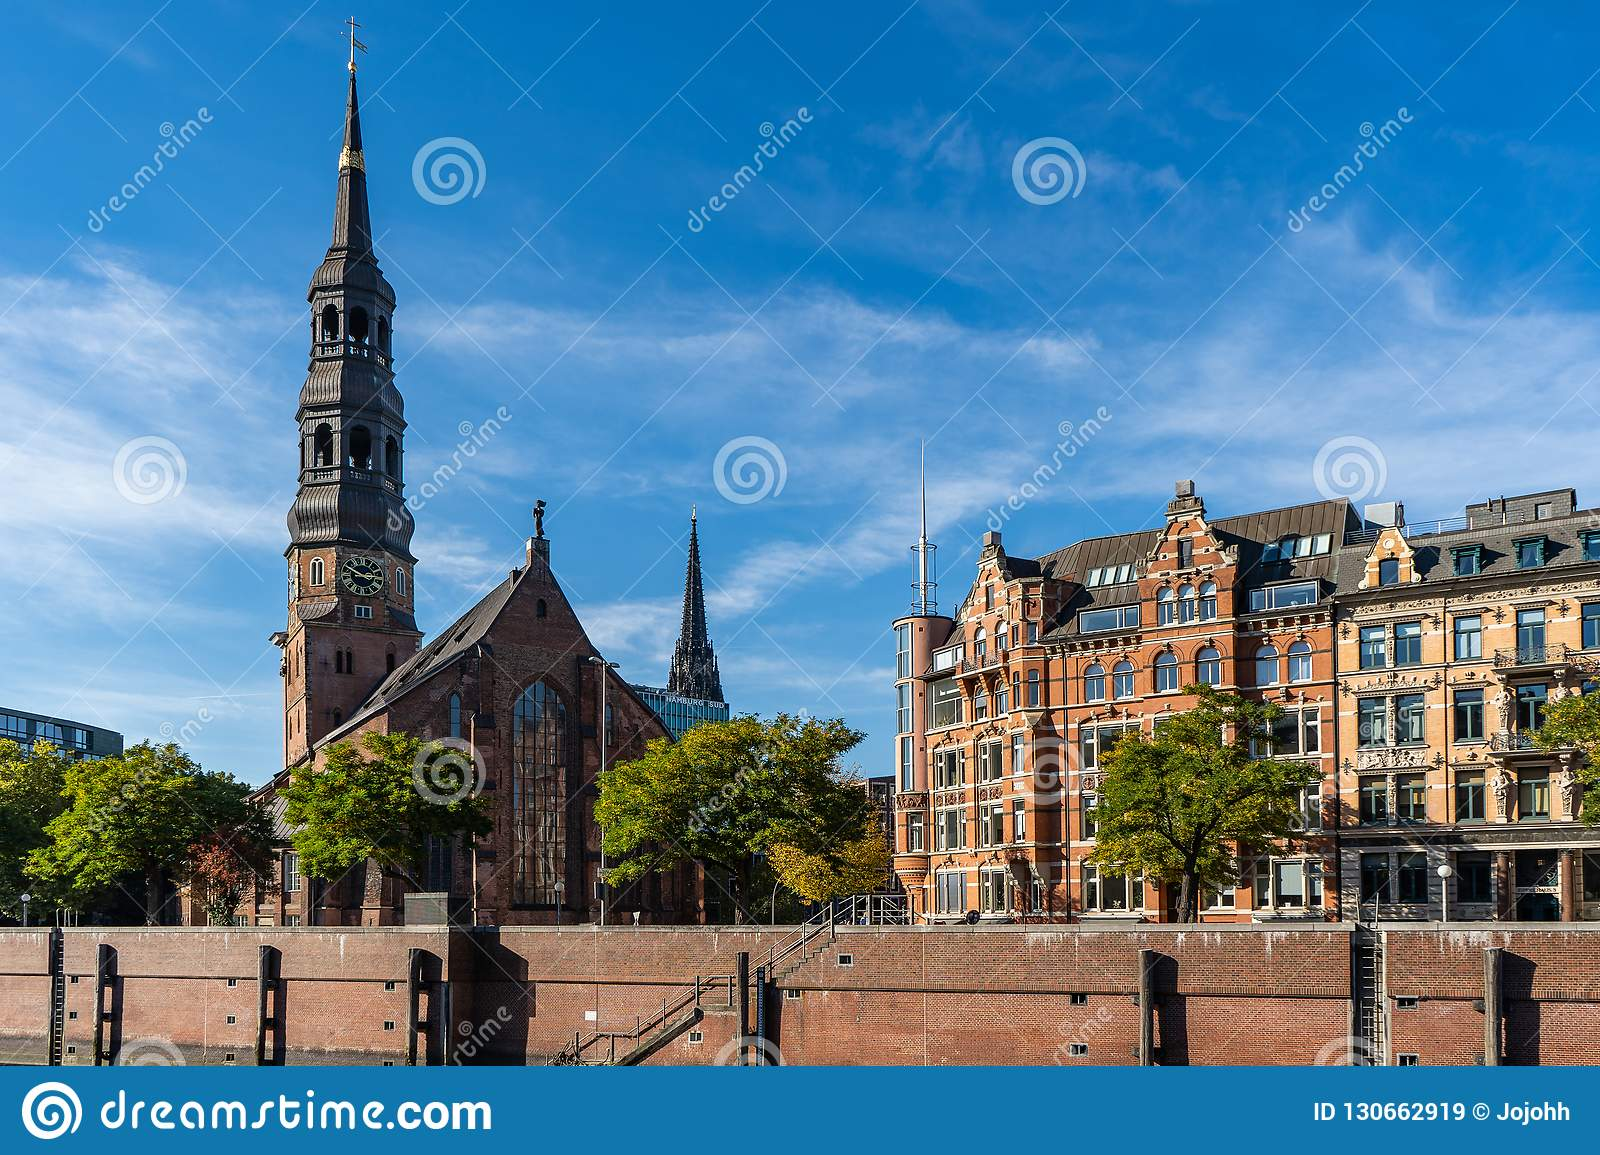 View from the Speicherstadt to the main church St. Katharinen.